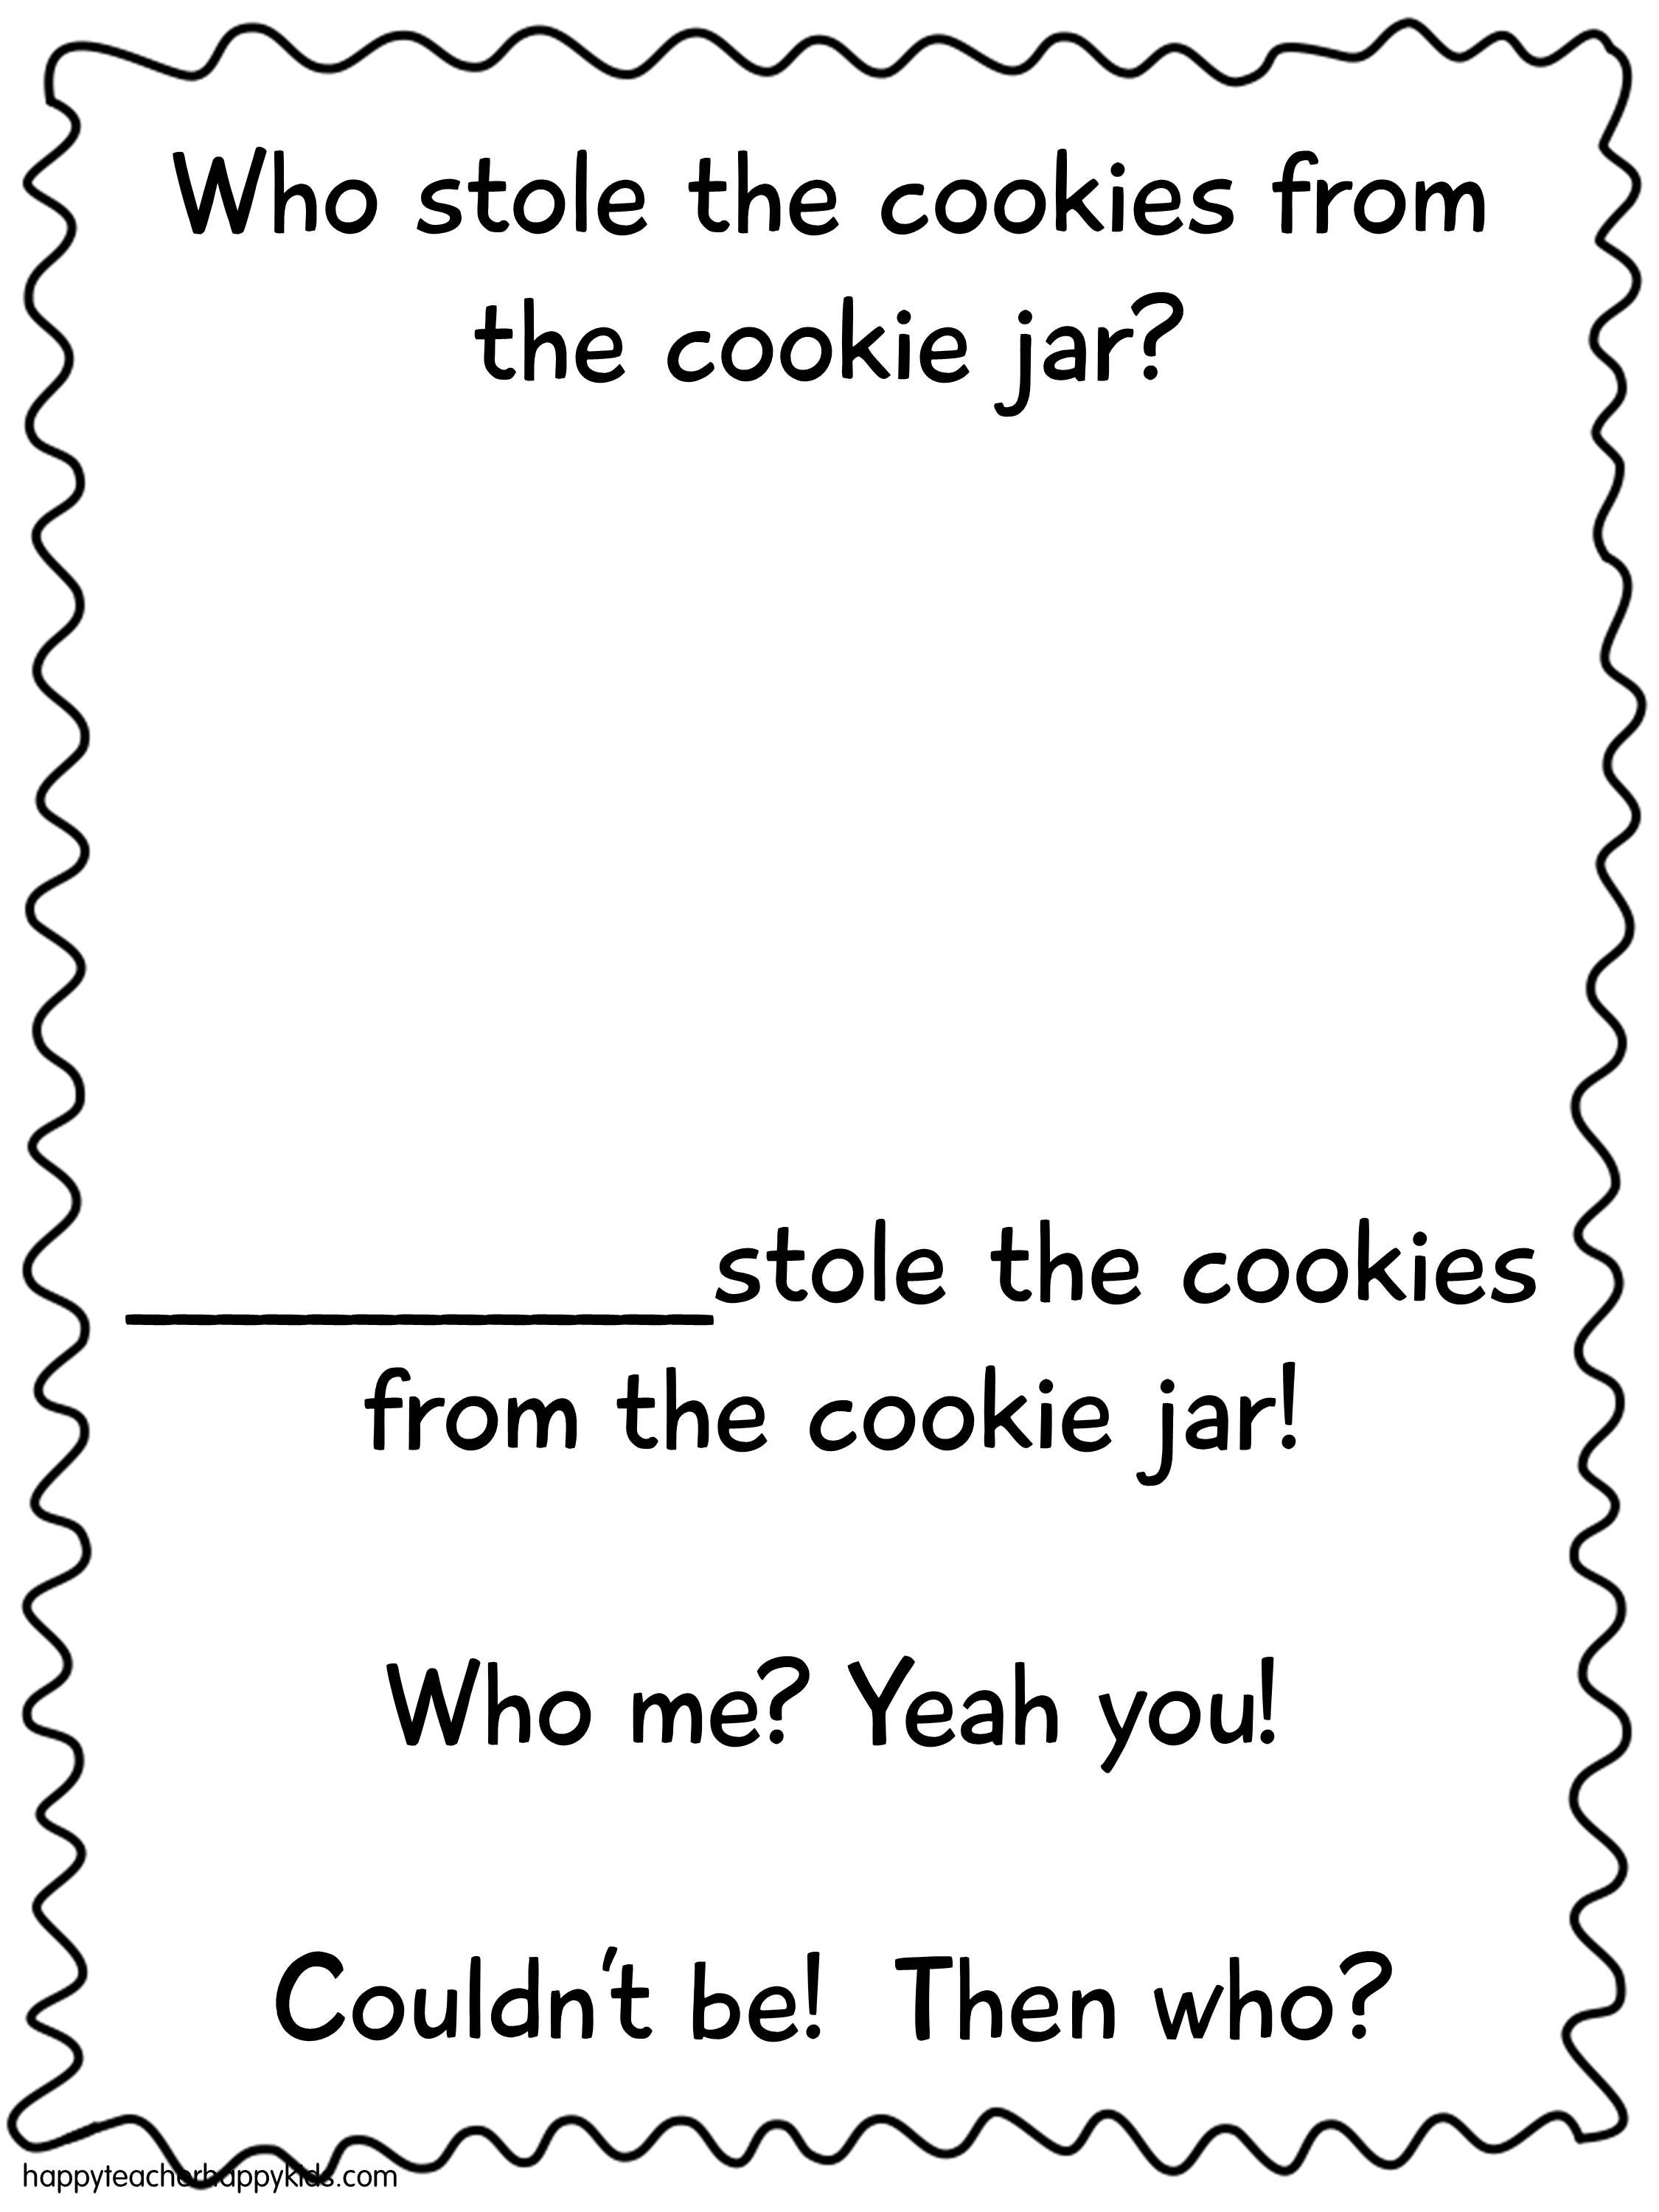 Who Stole The Cookie From The Cookie Jar Lyrics Pleasing Back To School Smart Cookies  Cookie Jars Jar And Books Design Decoration